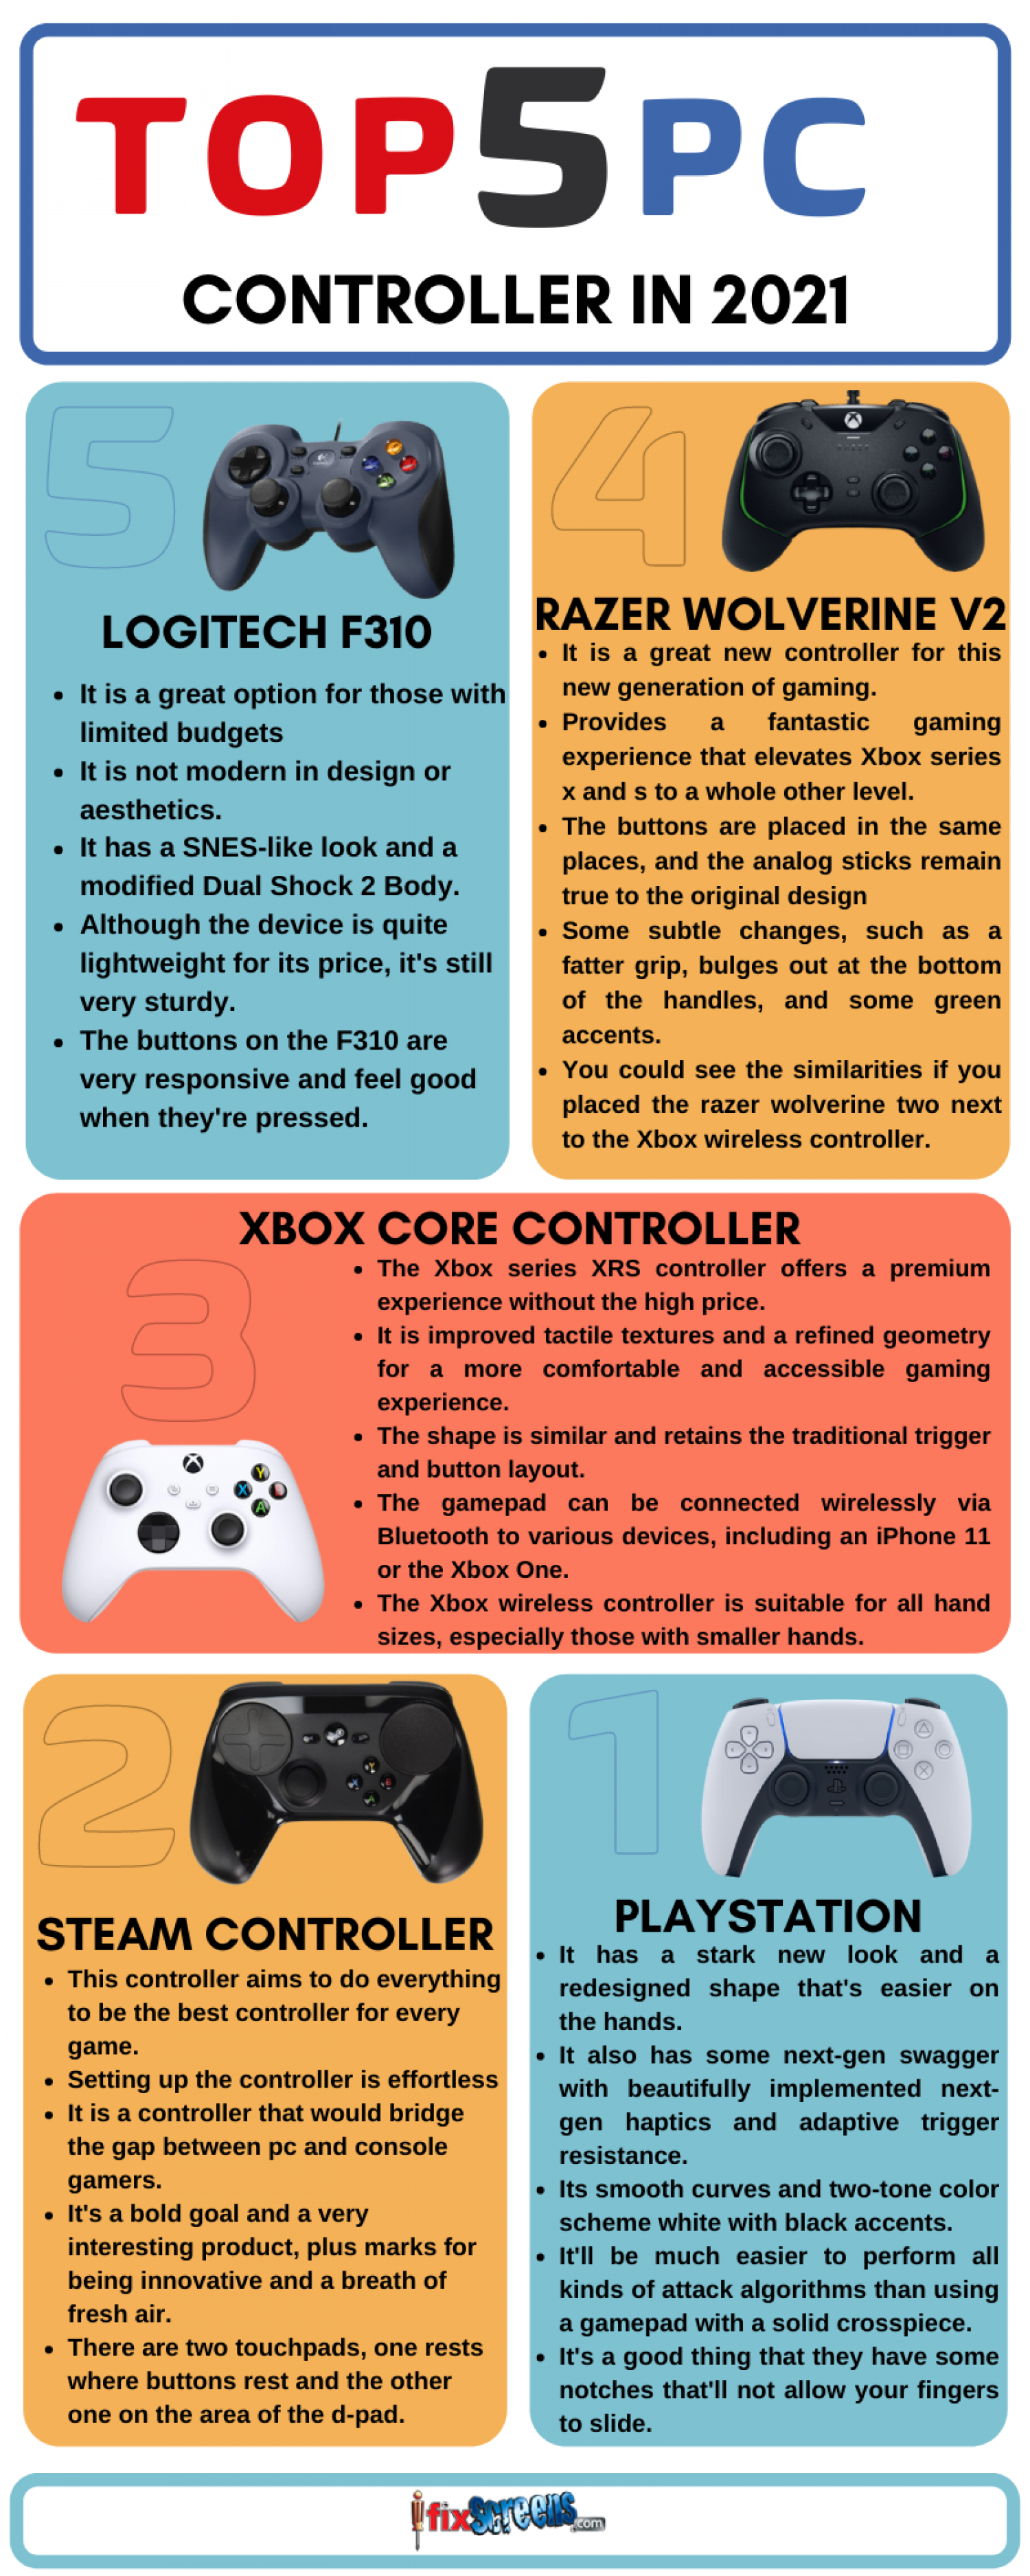 Top 5 PC controller in 2021 Infographic